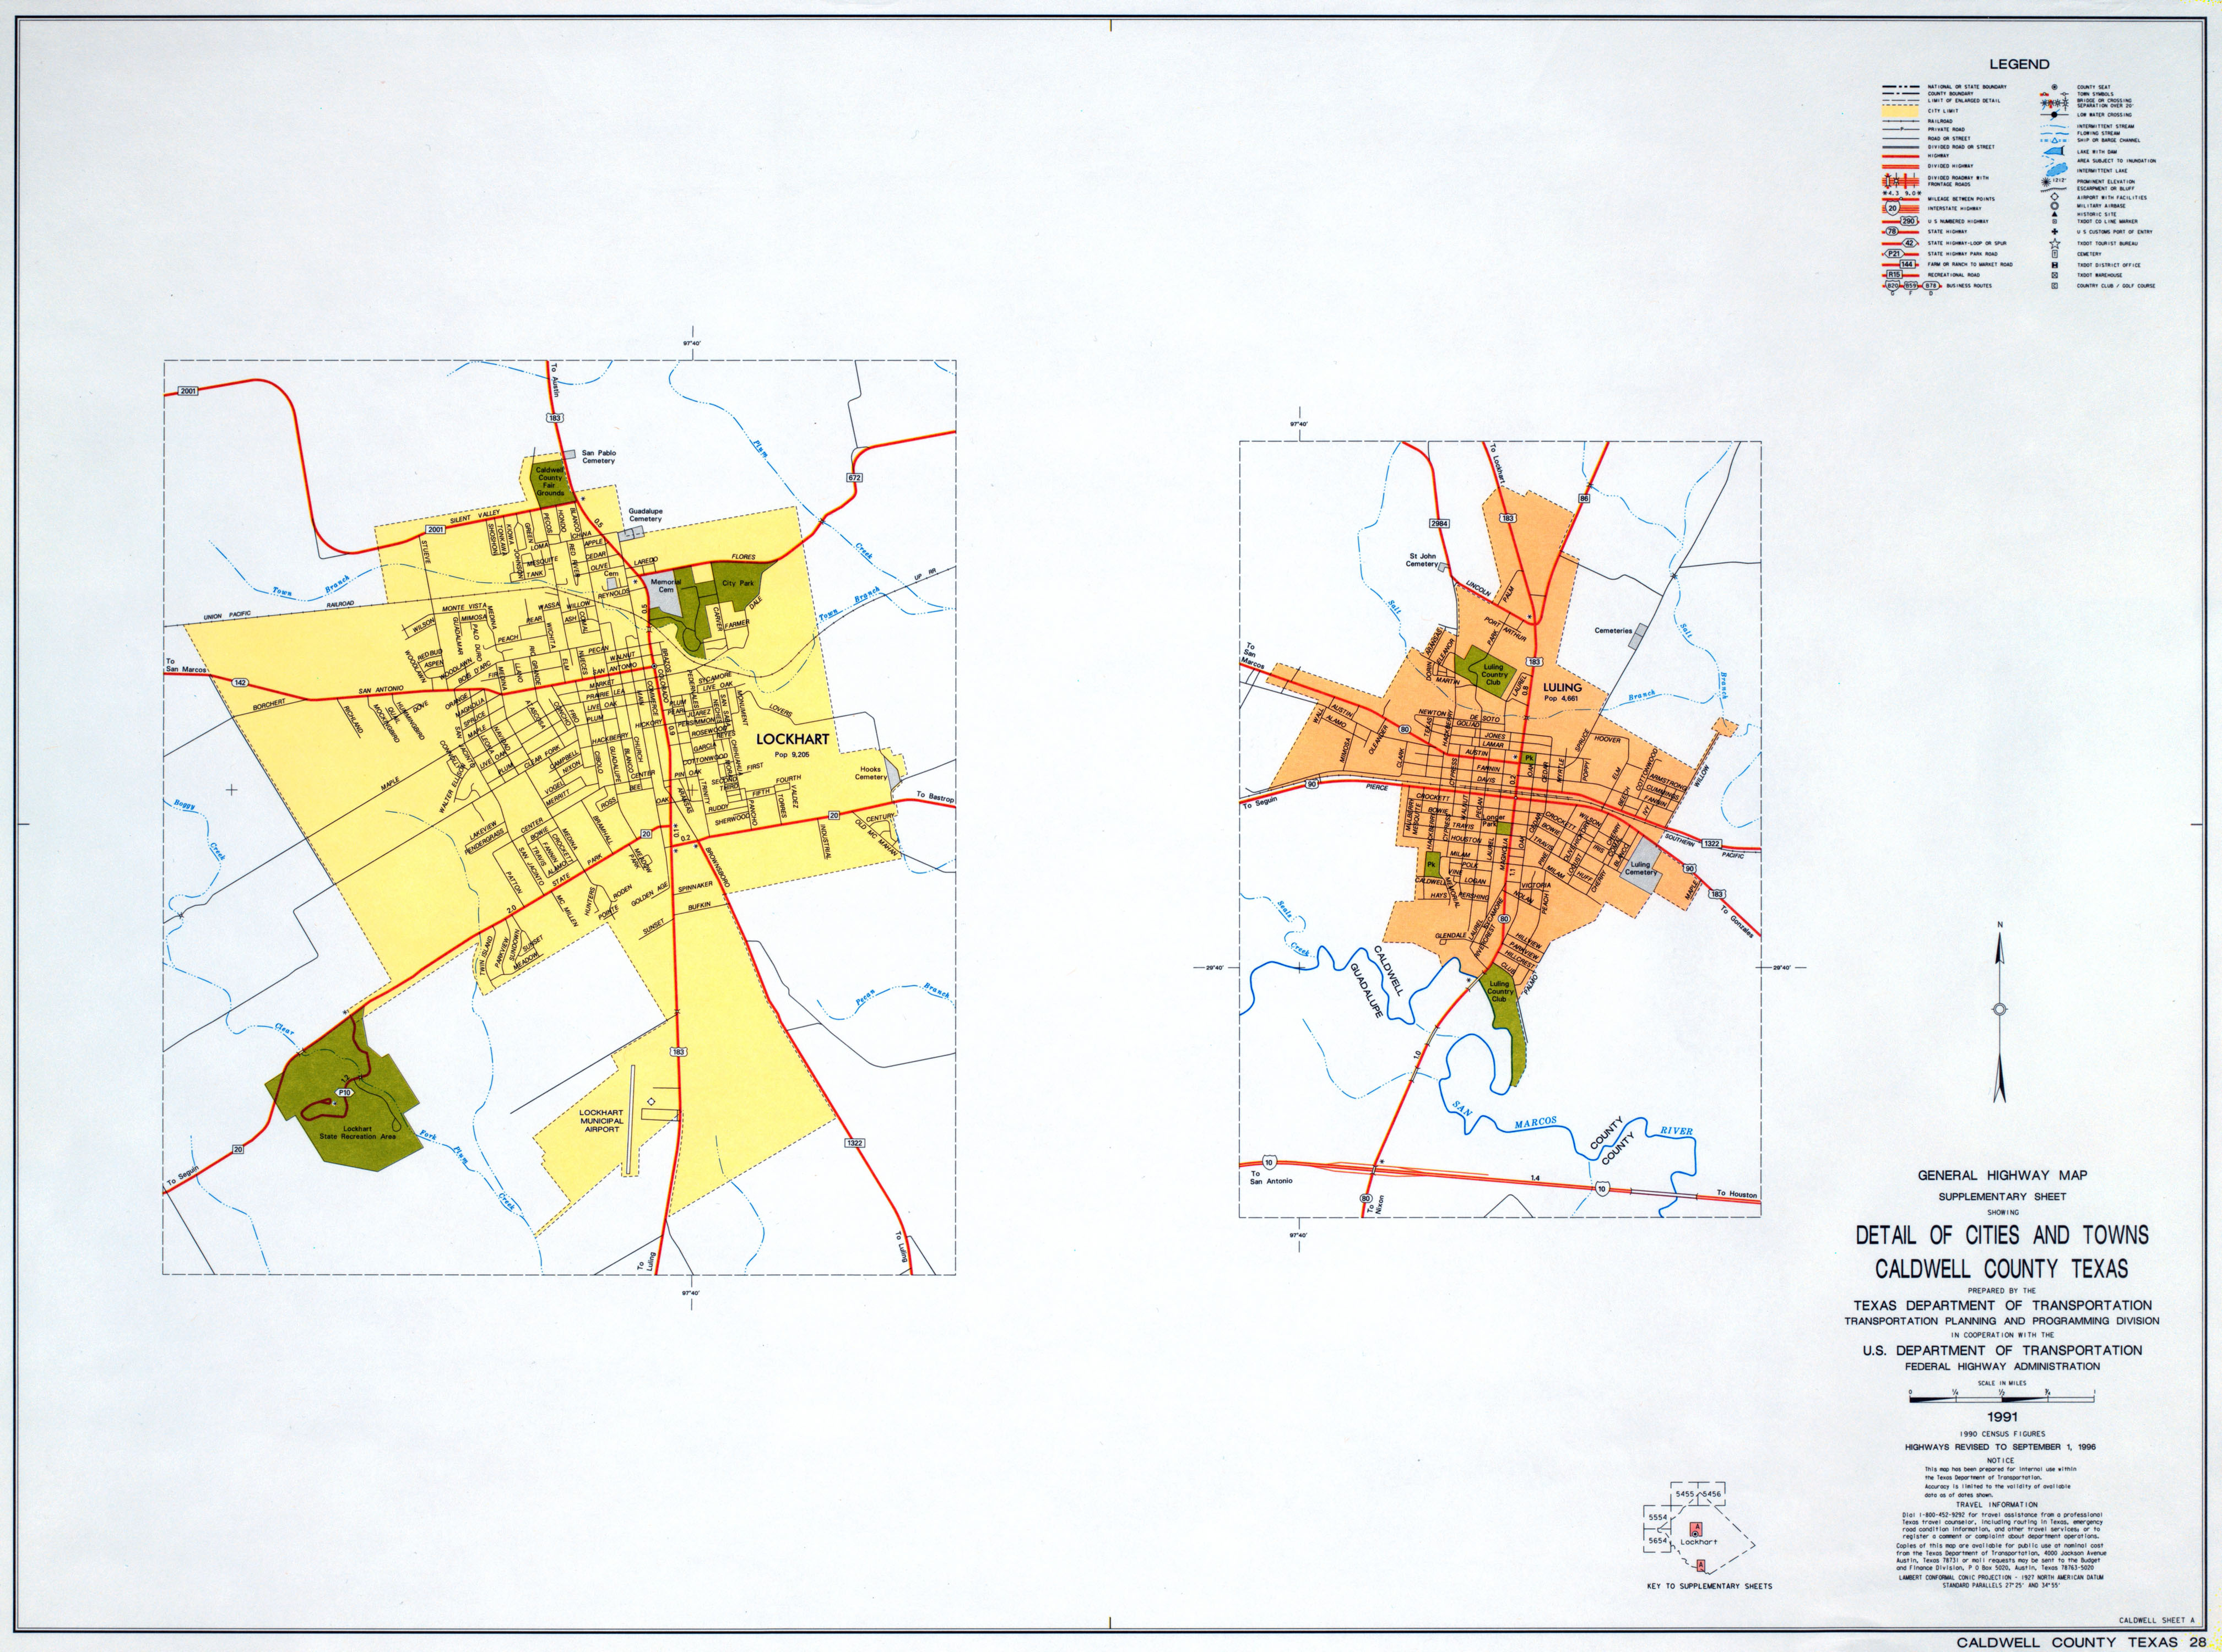 Texas County Highway Maps Browse - Perry-Castañeda Map ... on carlin county map, kerrville county map, kearney county map, copperas cove county map, pomeroy county map, sioux city county map, chariton county map, akron county map, brady county map, letcher county map, lodi county map, barnes county map, mercer county map, clay county map, westwood county map, englewood county map, schley county map, bastrop county map, elliott county map, candler county map,